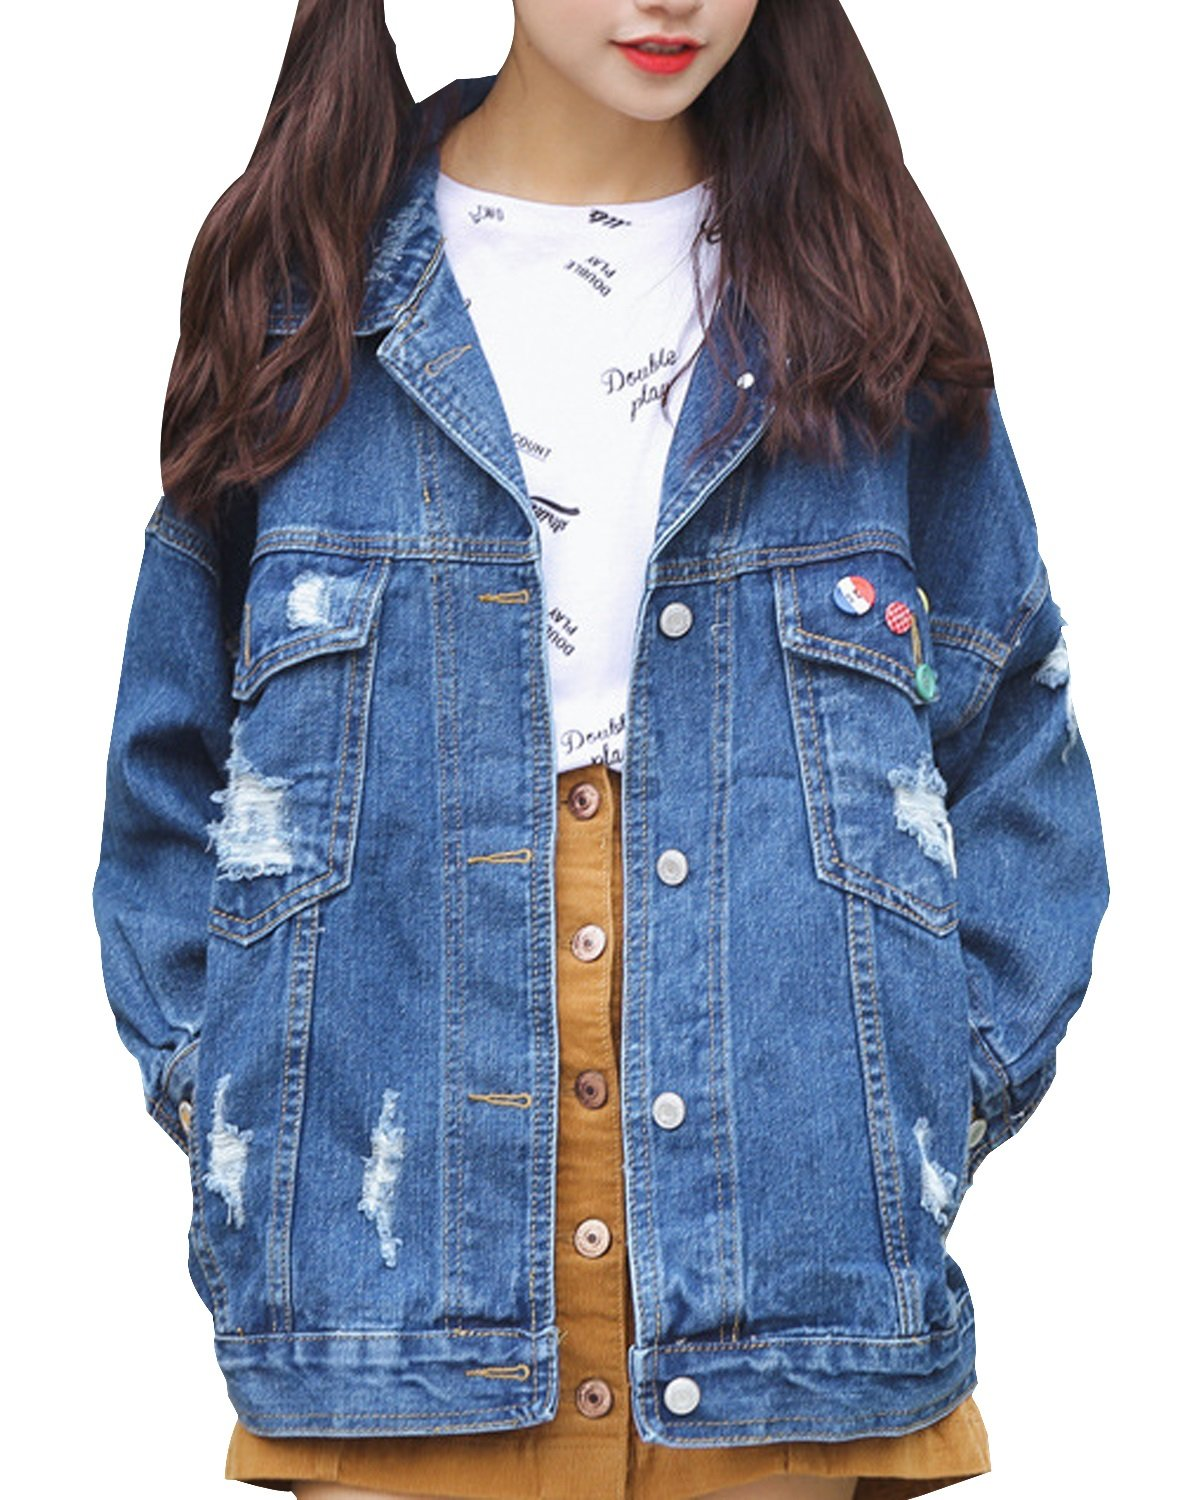 MorySong Women's Boyfriend Denim Jacket Loose Washed Distressed Jean Coats With Pocket M Blue